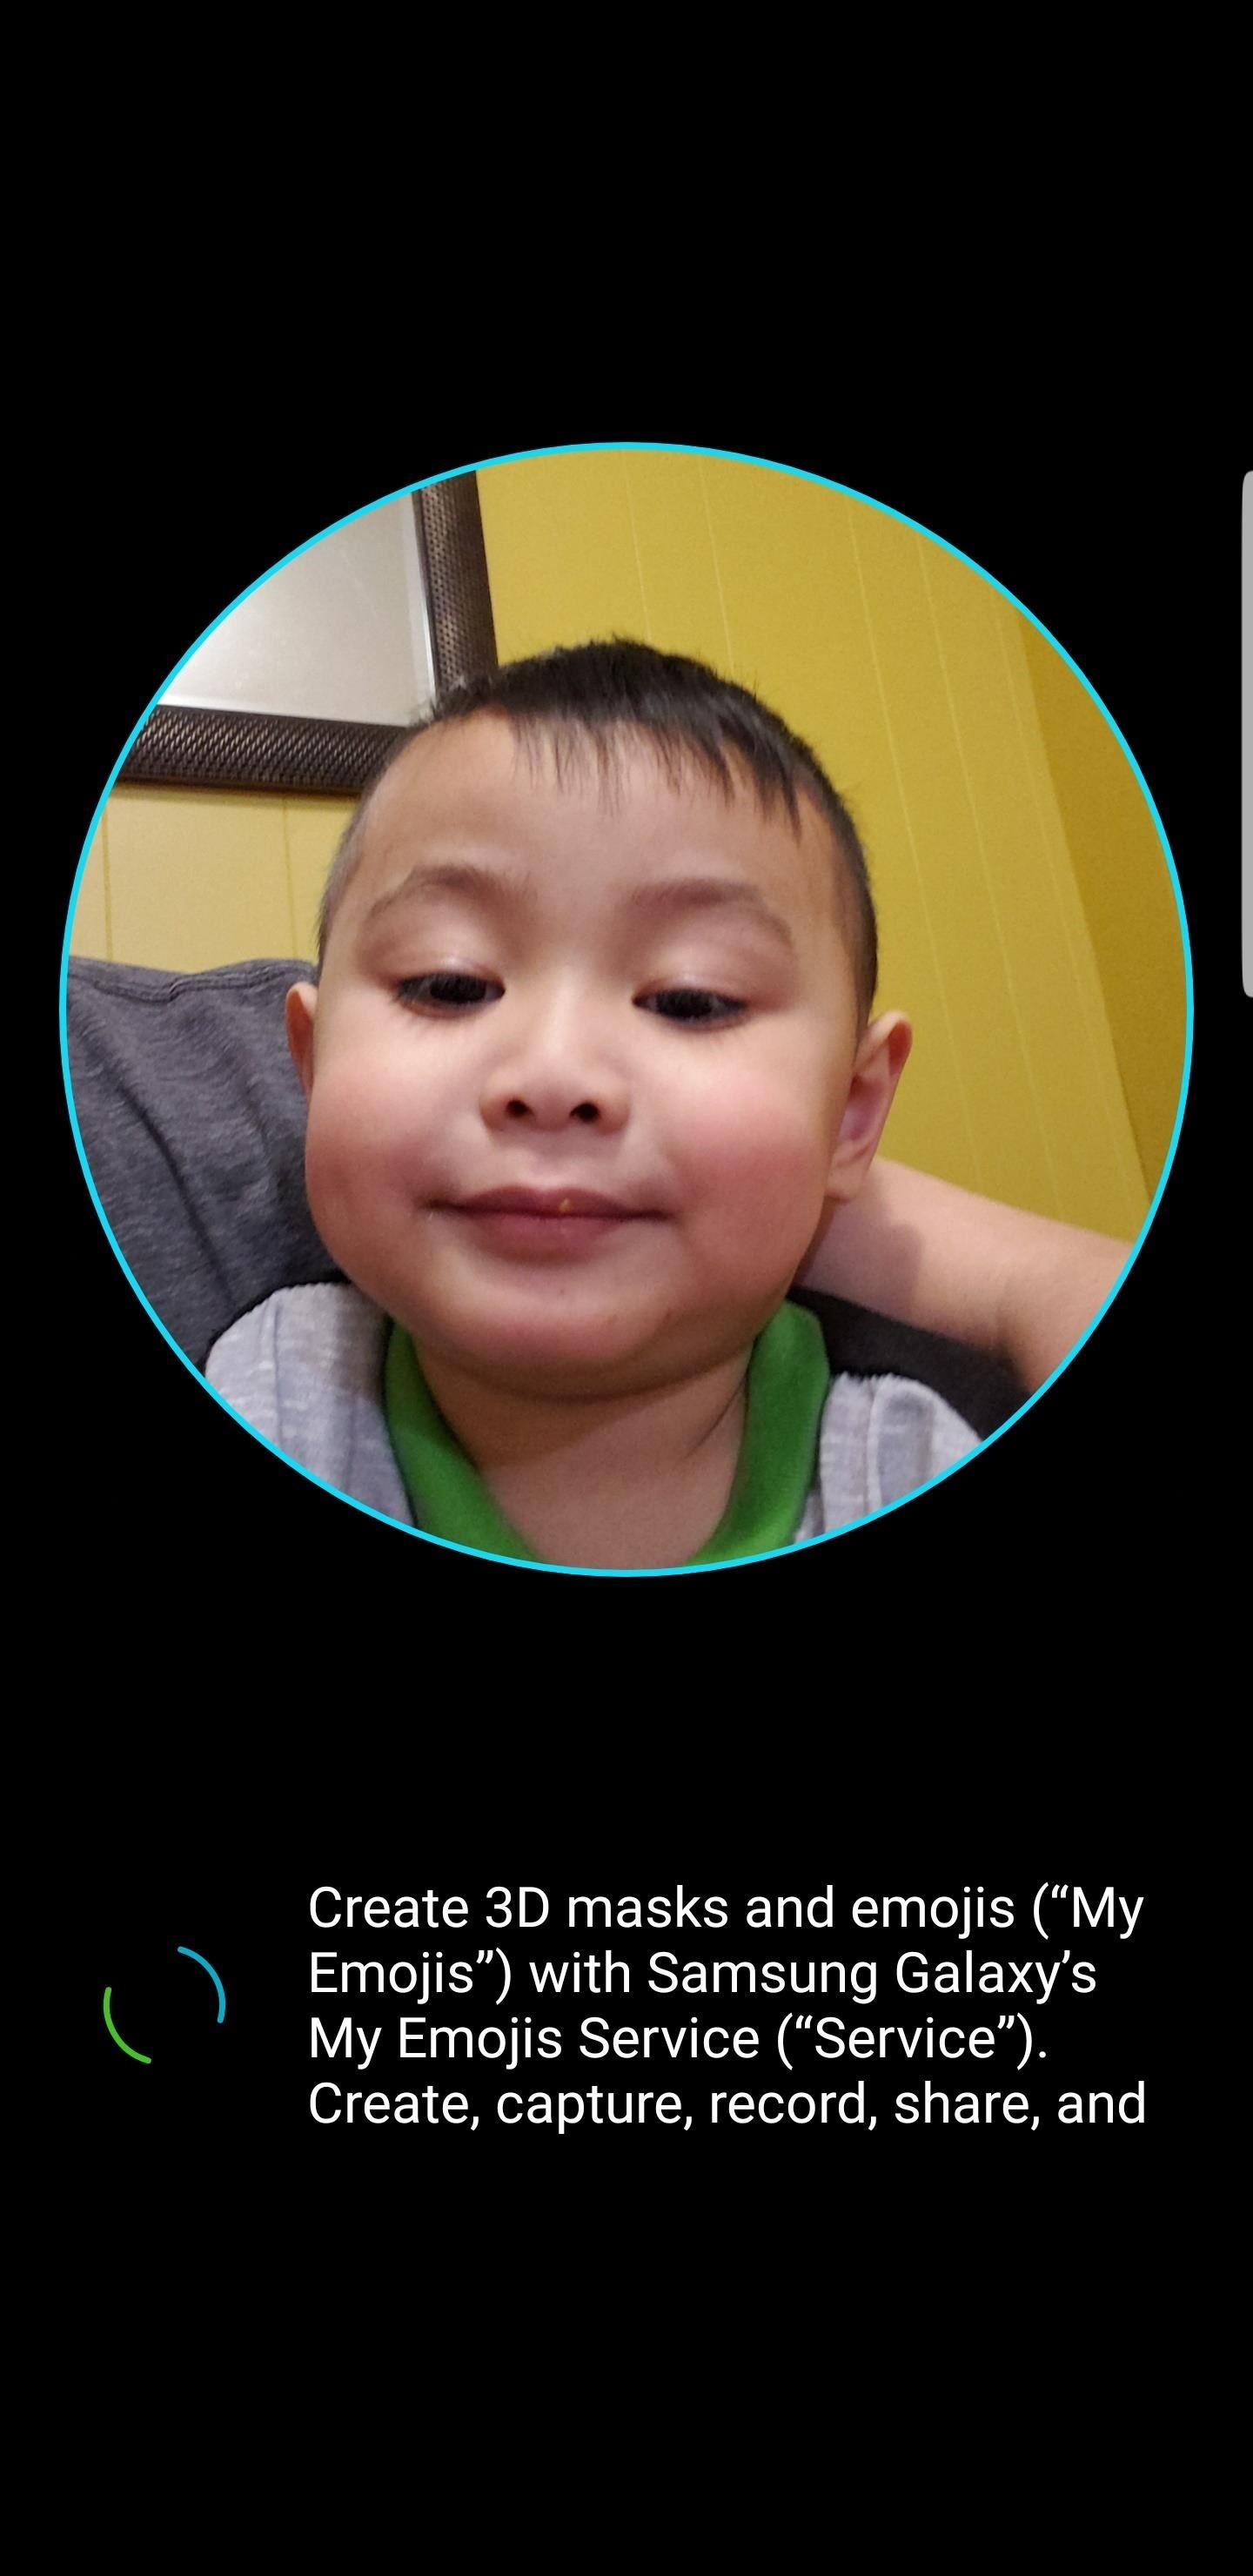 How to Make an AR Emoji with the Galaxy S9